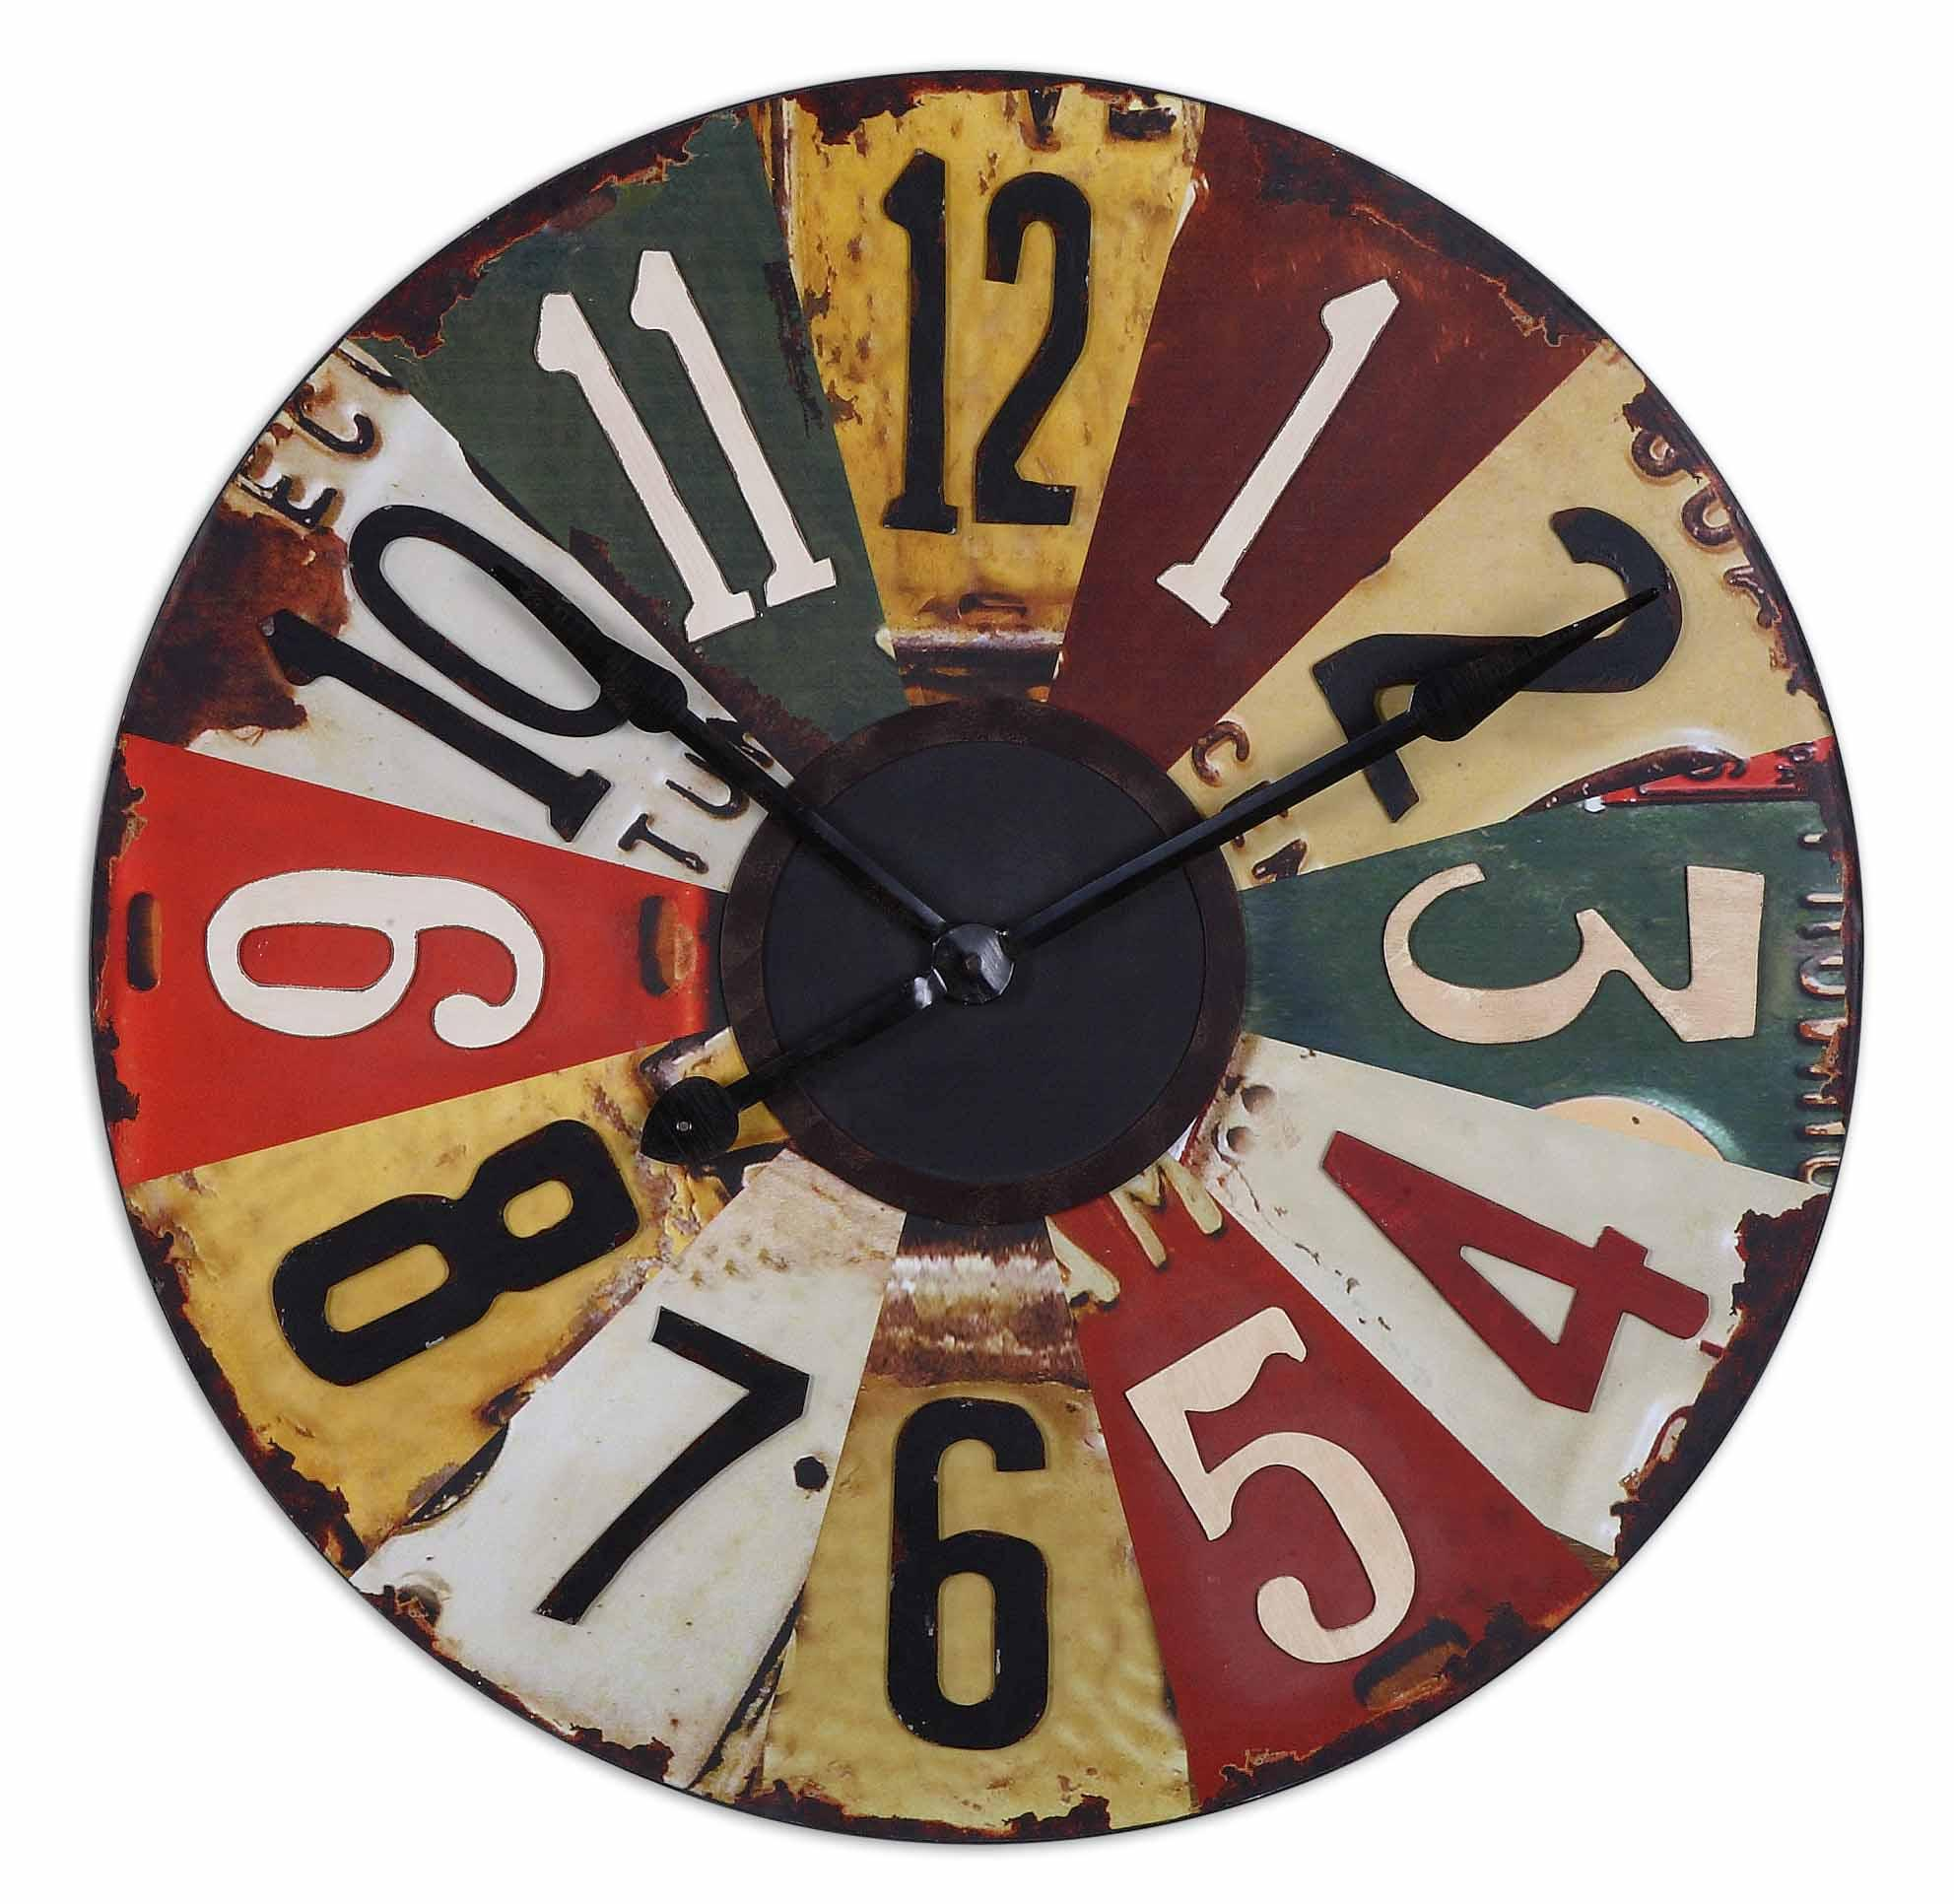 Uttermost Clocks Vintage License Plates Clock - Item Number: 06675